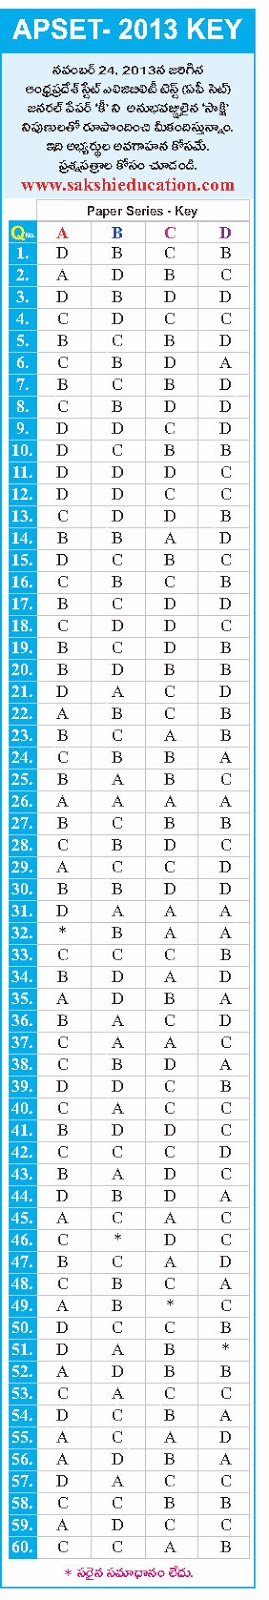 APSET 2013 Answer Key